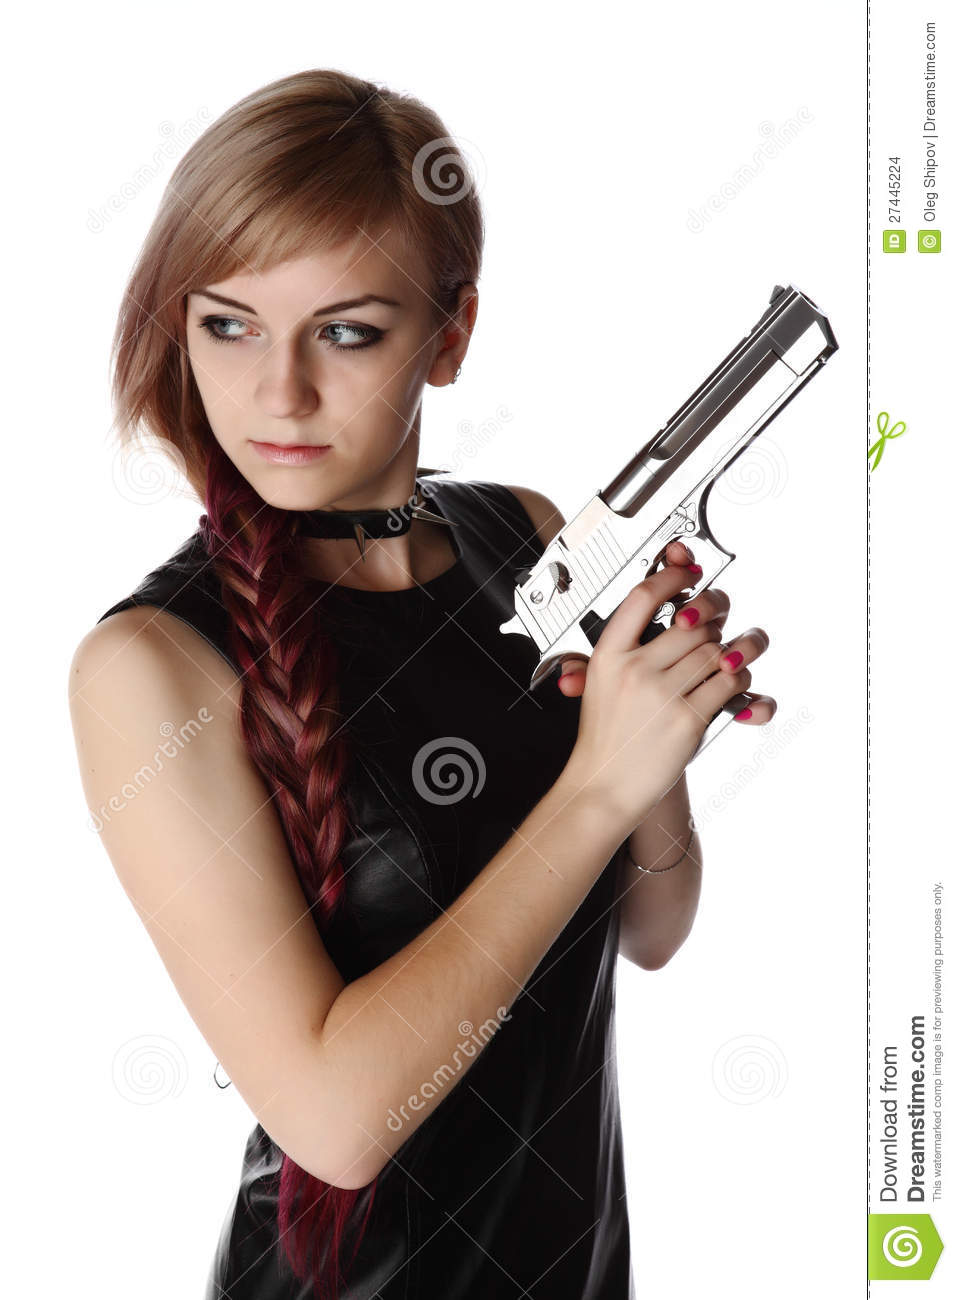 Opinion Girls nude holding guns